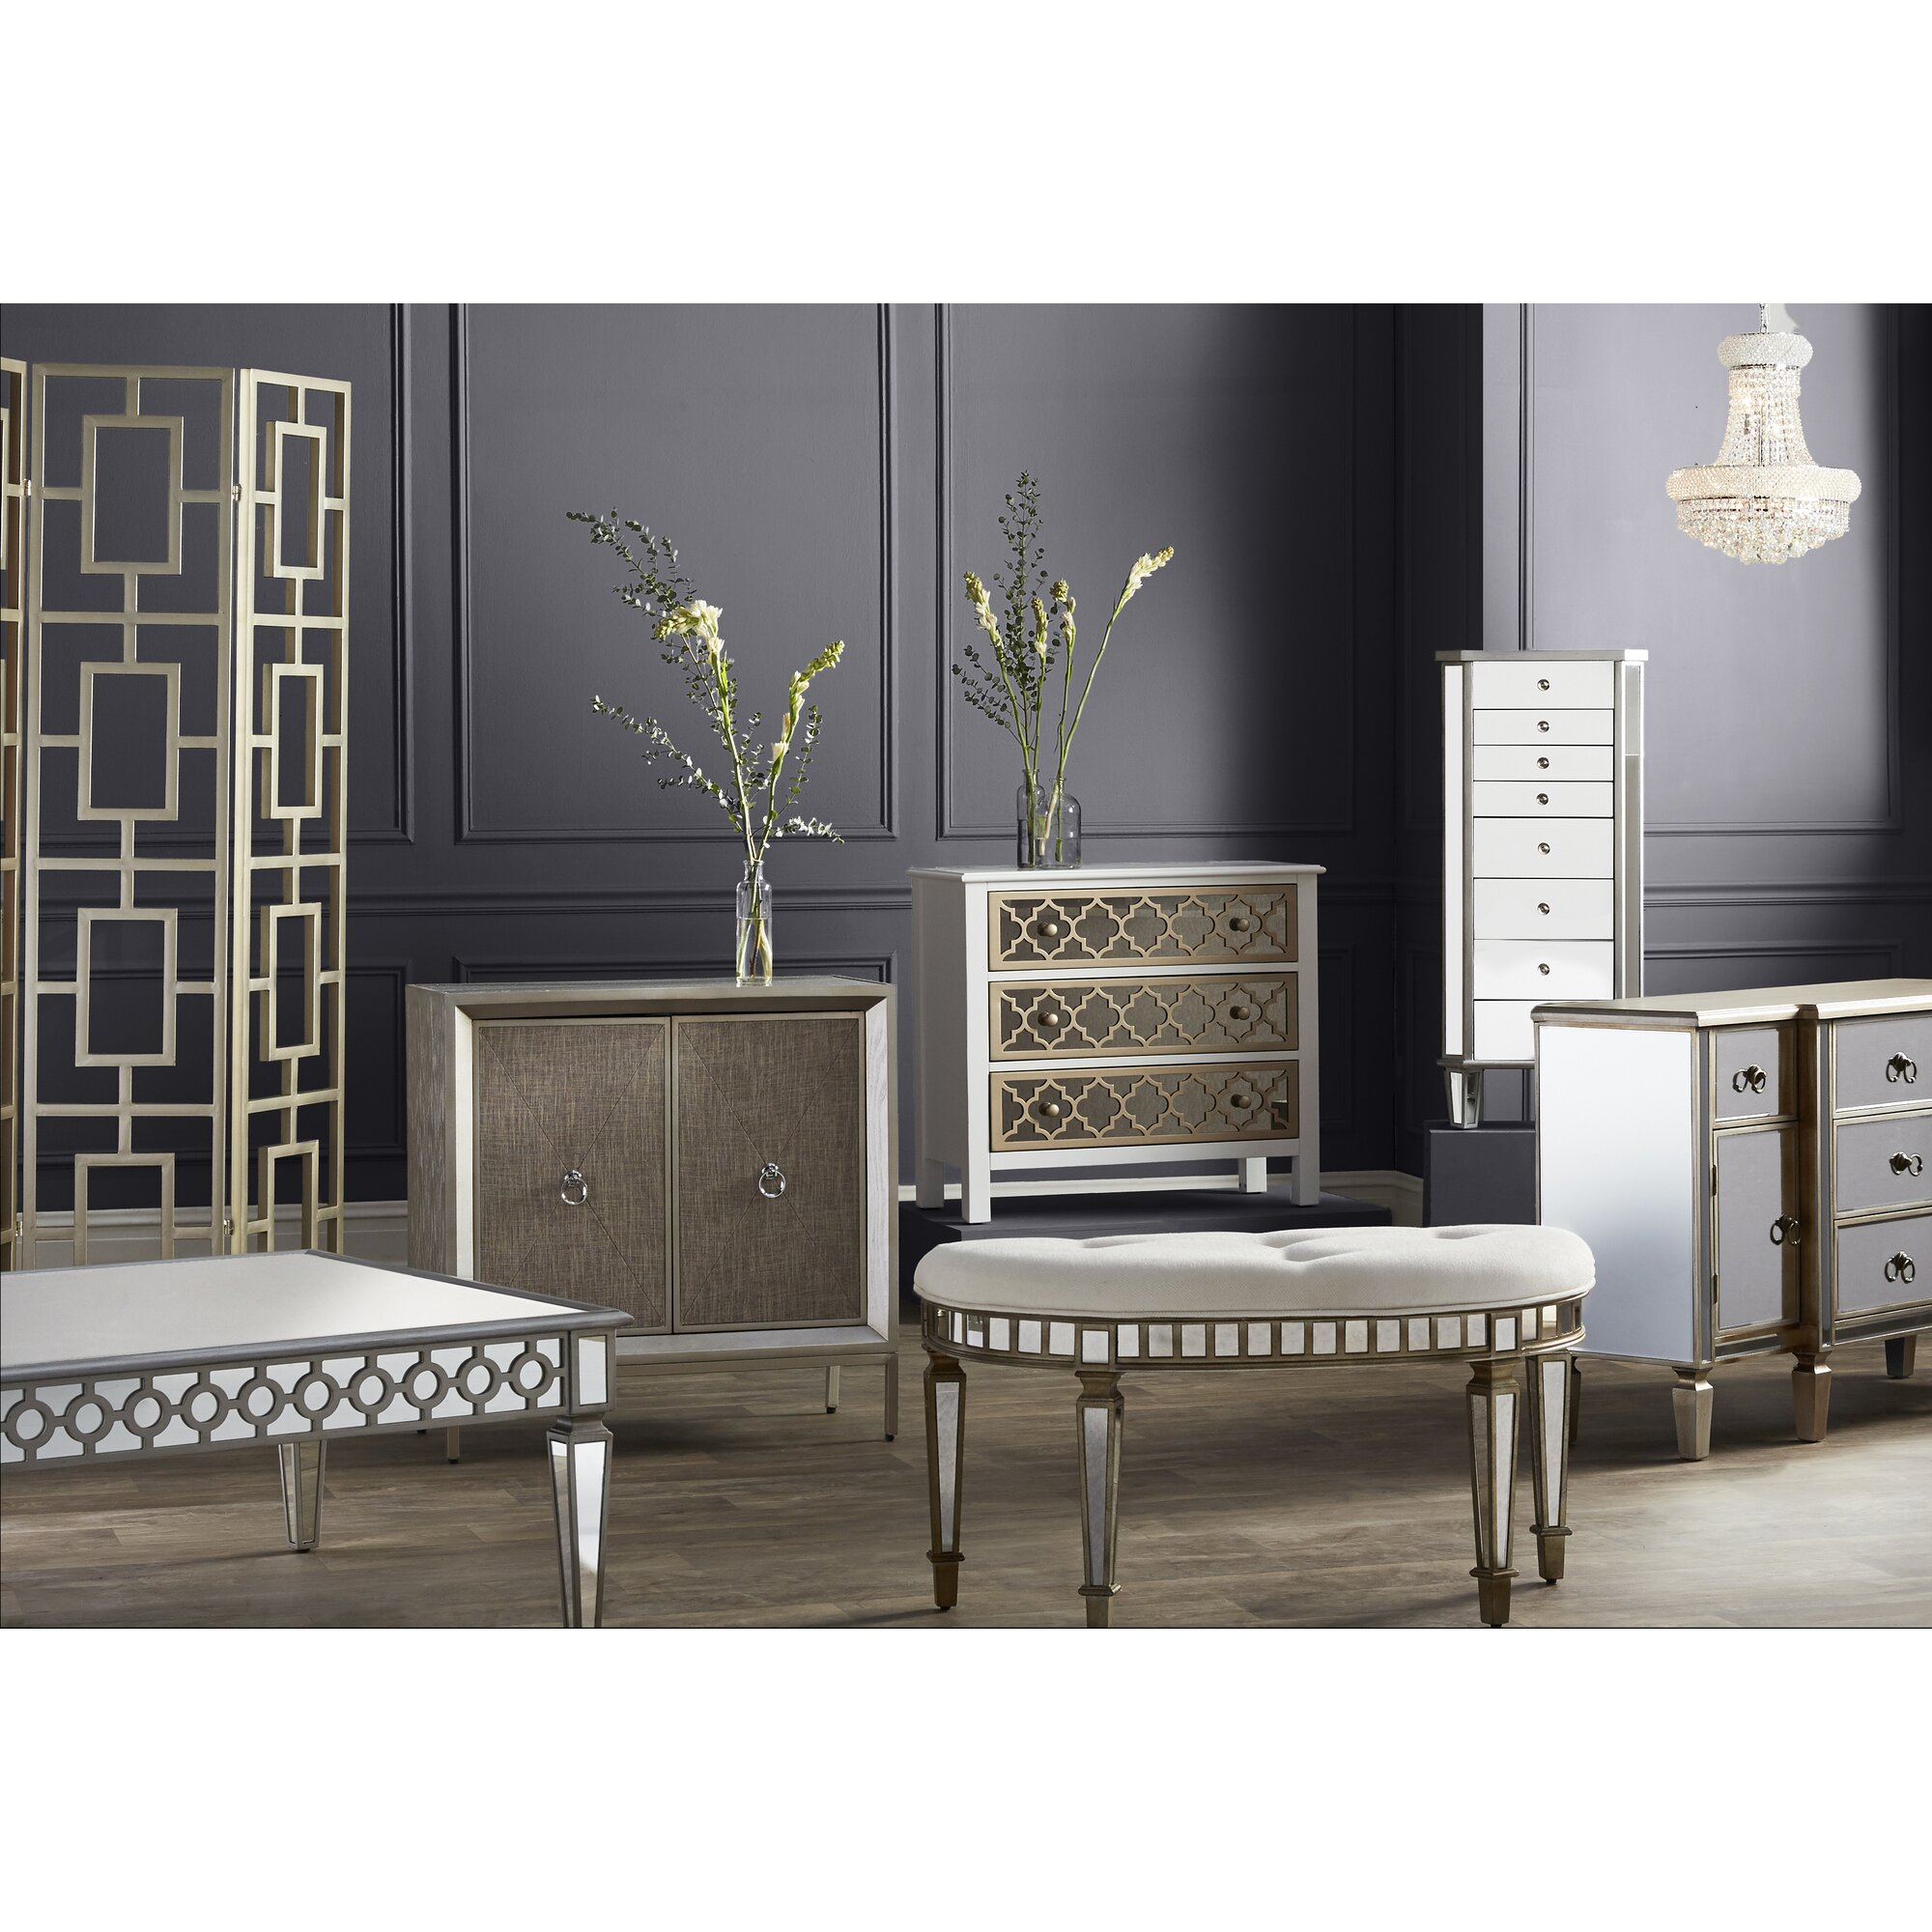 Willa Arlo Interiors Fernwood 3 Drawer Overlay Mirrored Accent Chest Reviews